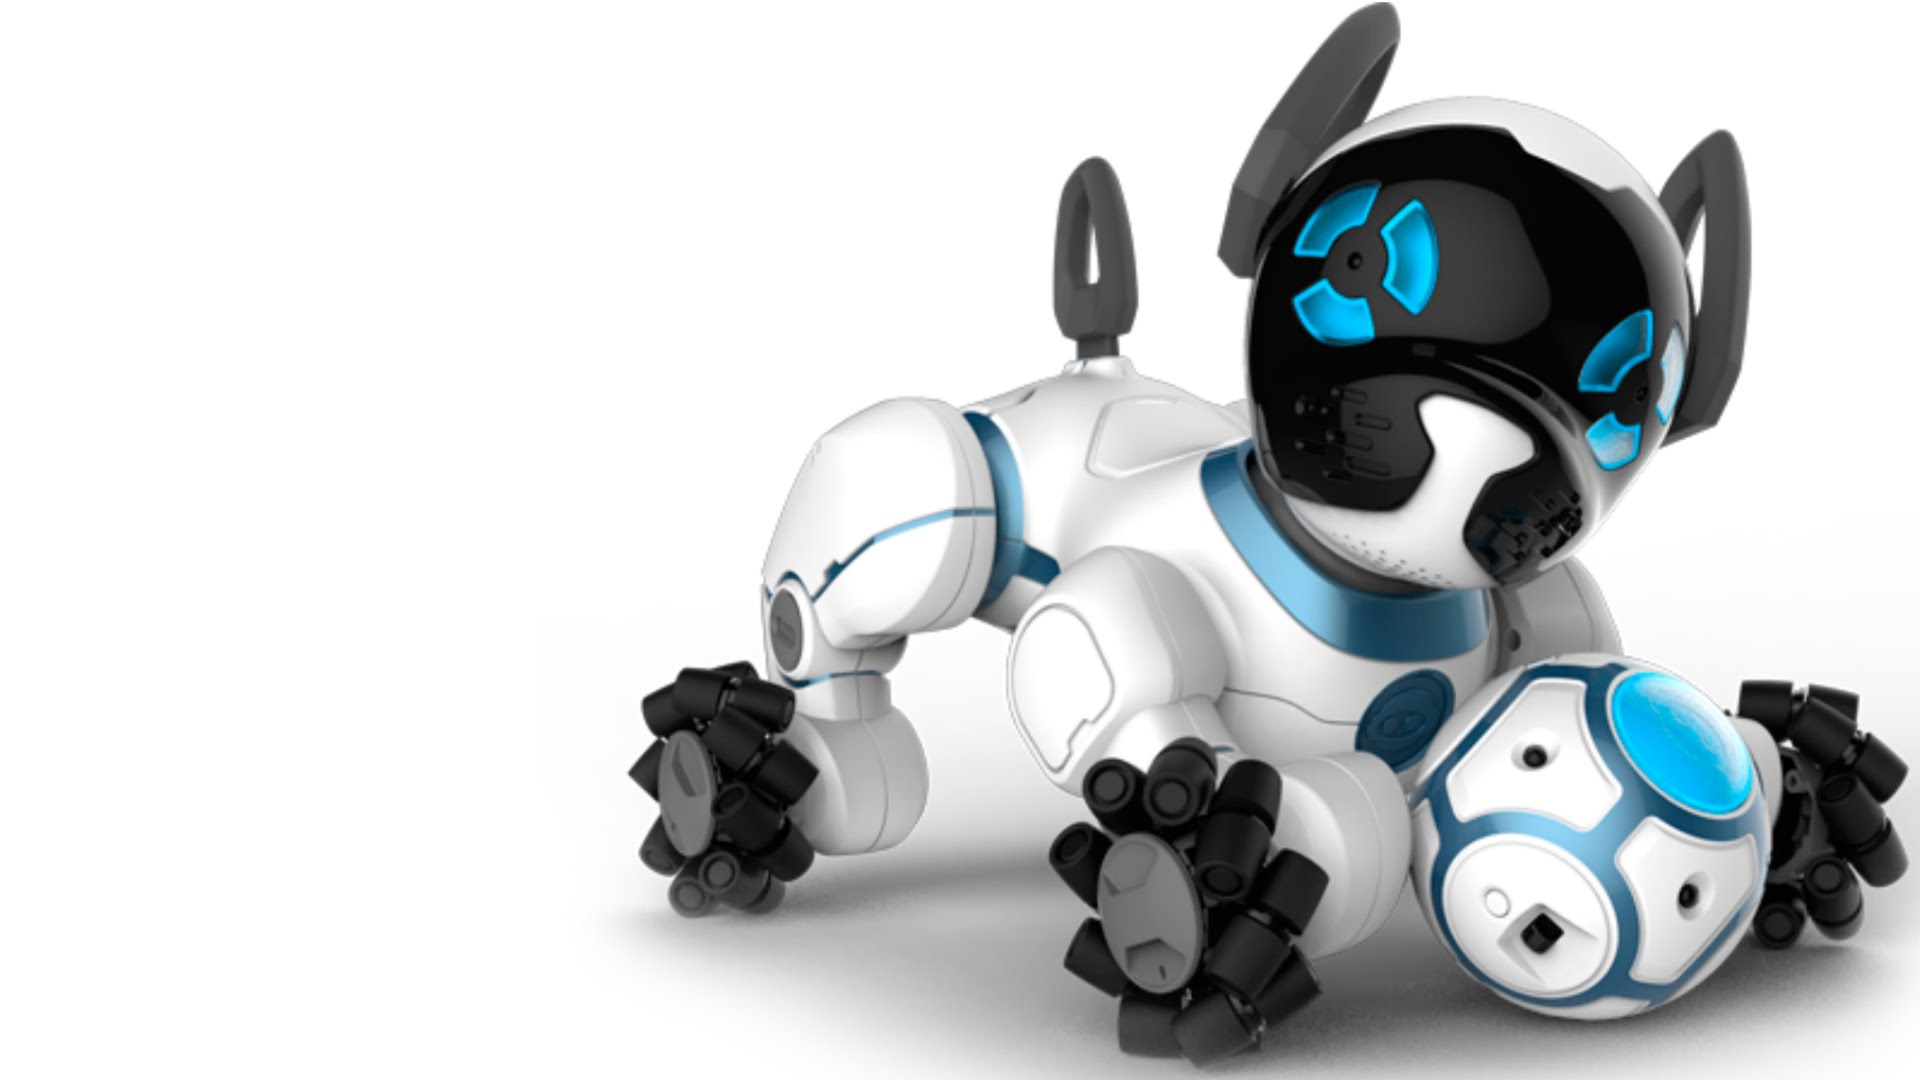 Cool Robot Toys : Futuristic robots you must have onlyrobots